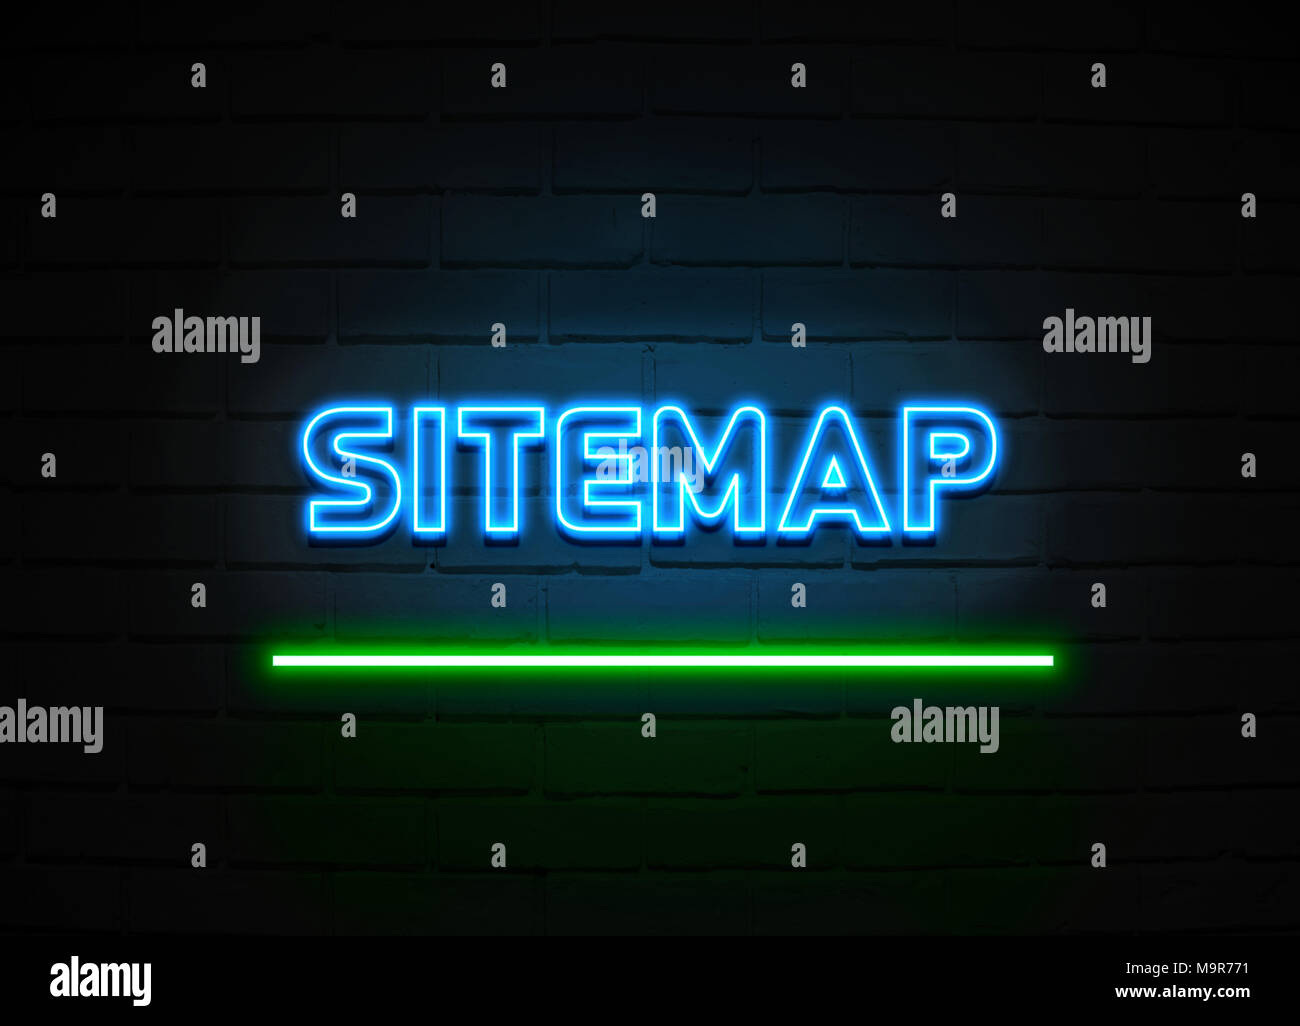 Sitemap neon sign - Glowing Neon Sign on brickwall wall - 3D rendered royalty free stock illustration. Stock Photo